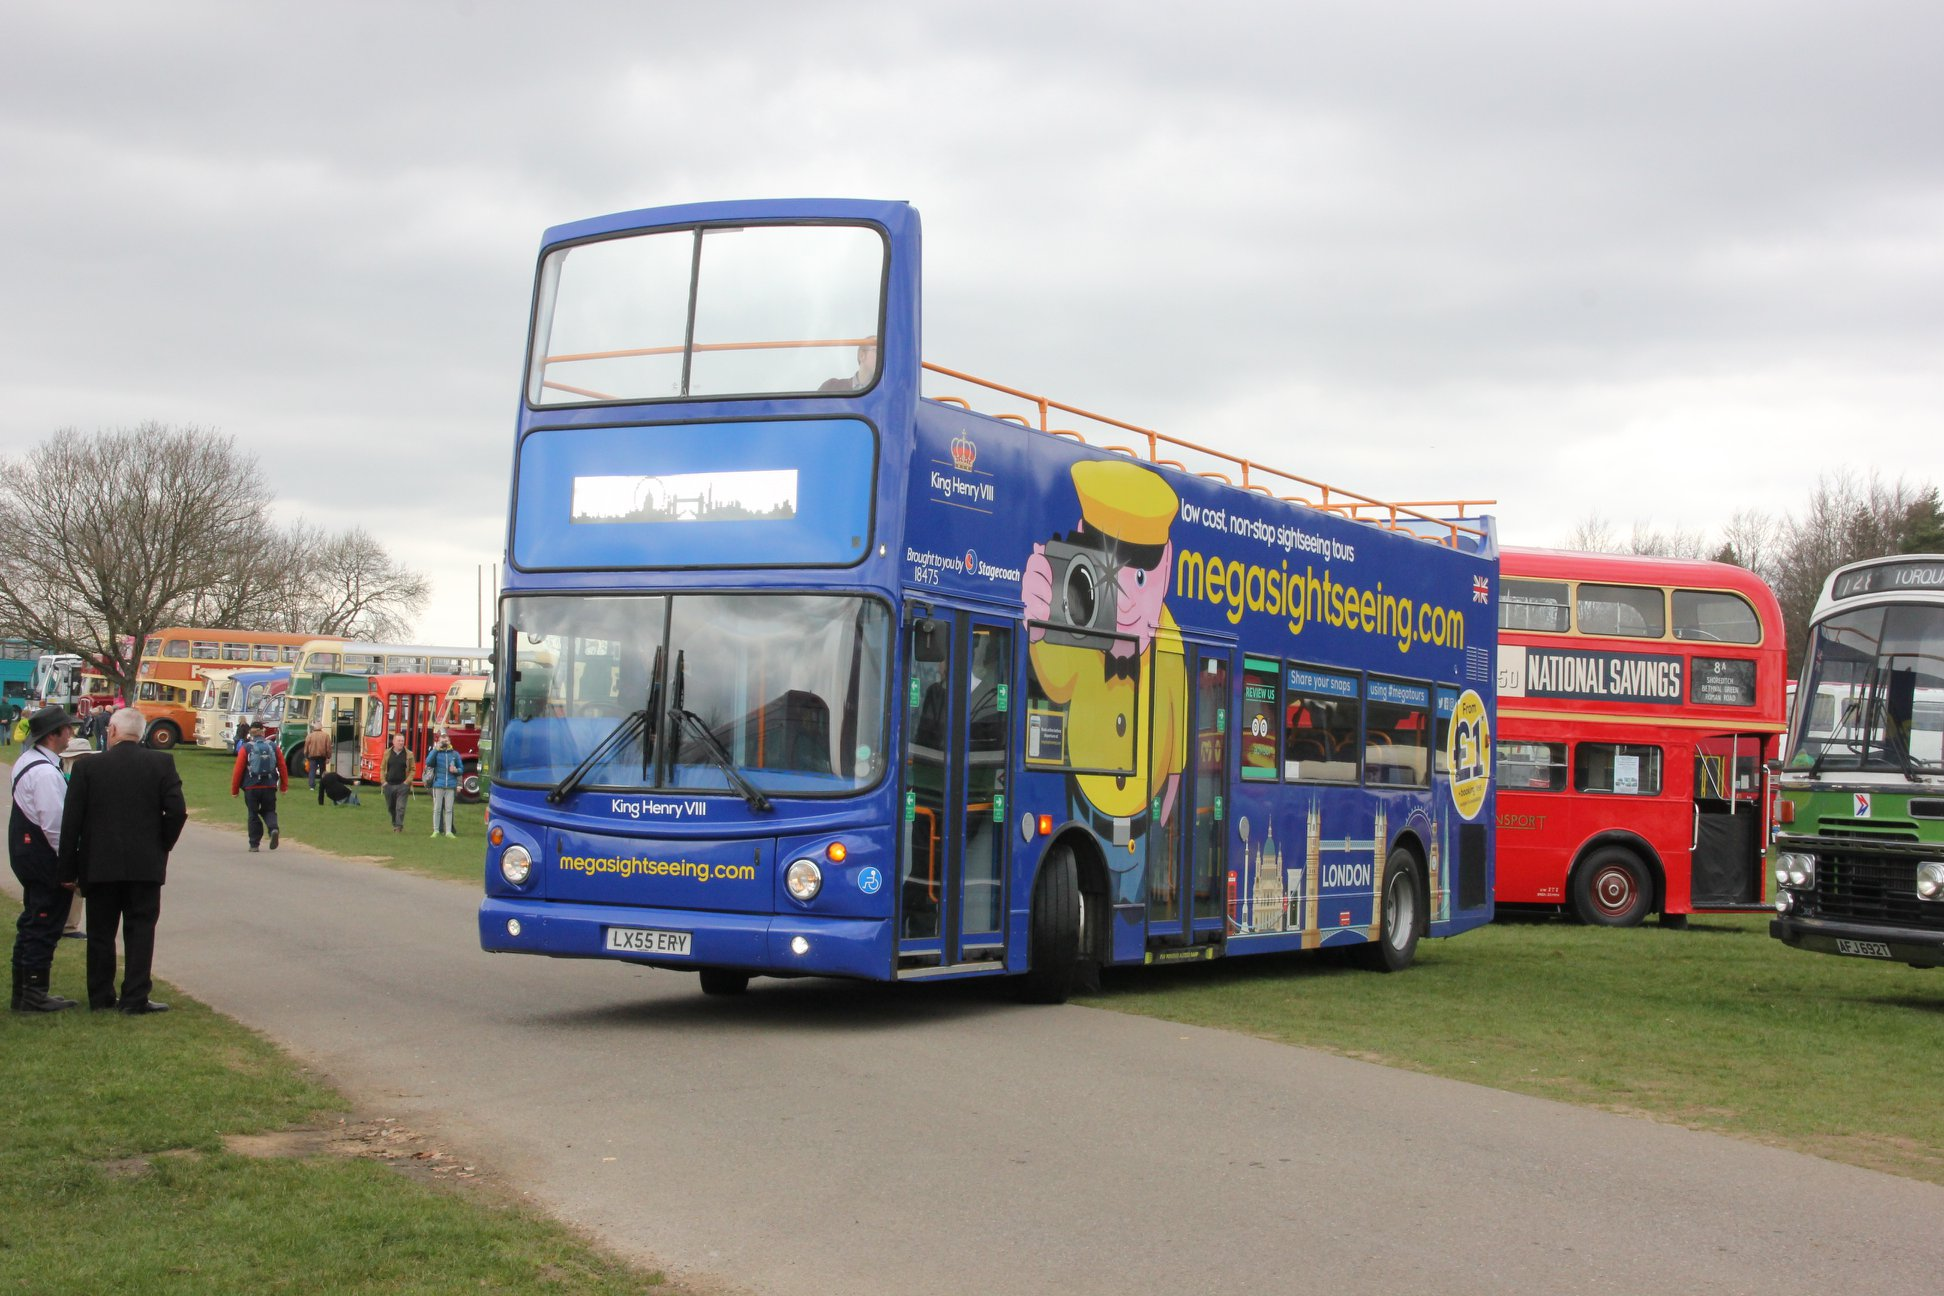 8-4-2018-South-East-Bus-Festival-12